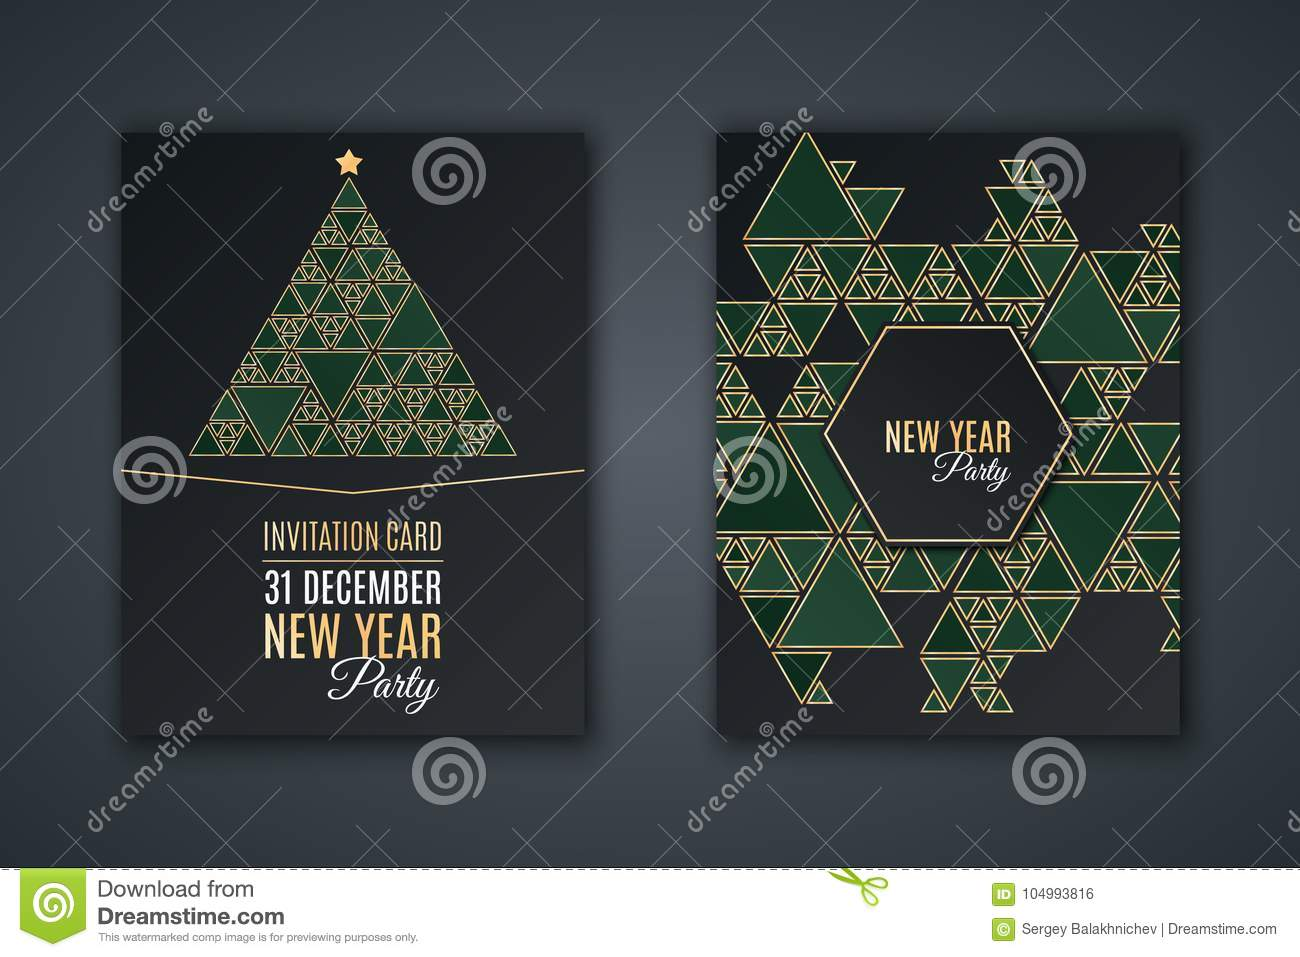 elegant invitation card for new years party pattern mosaic of green triangles with